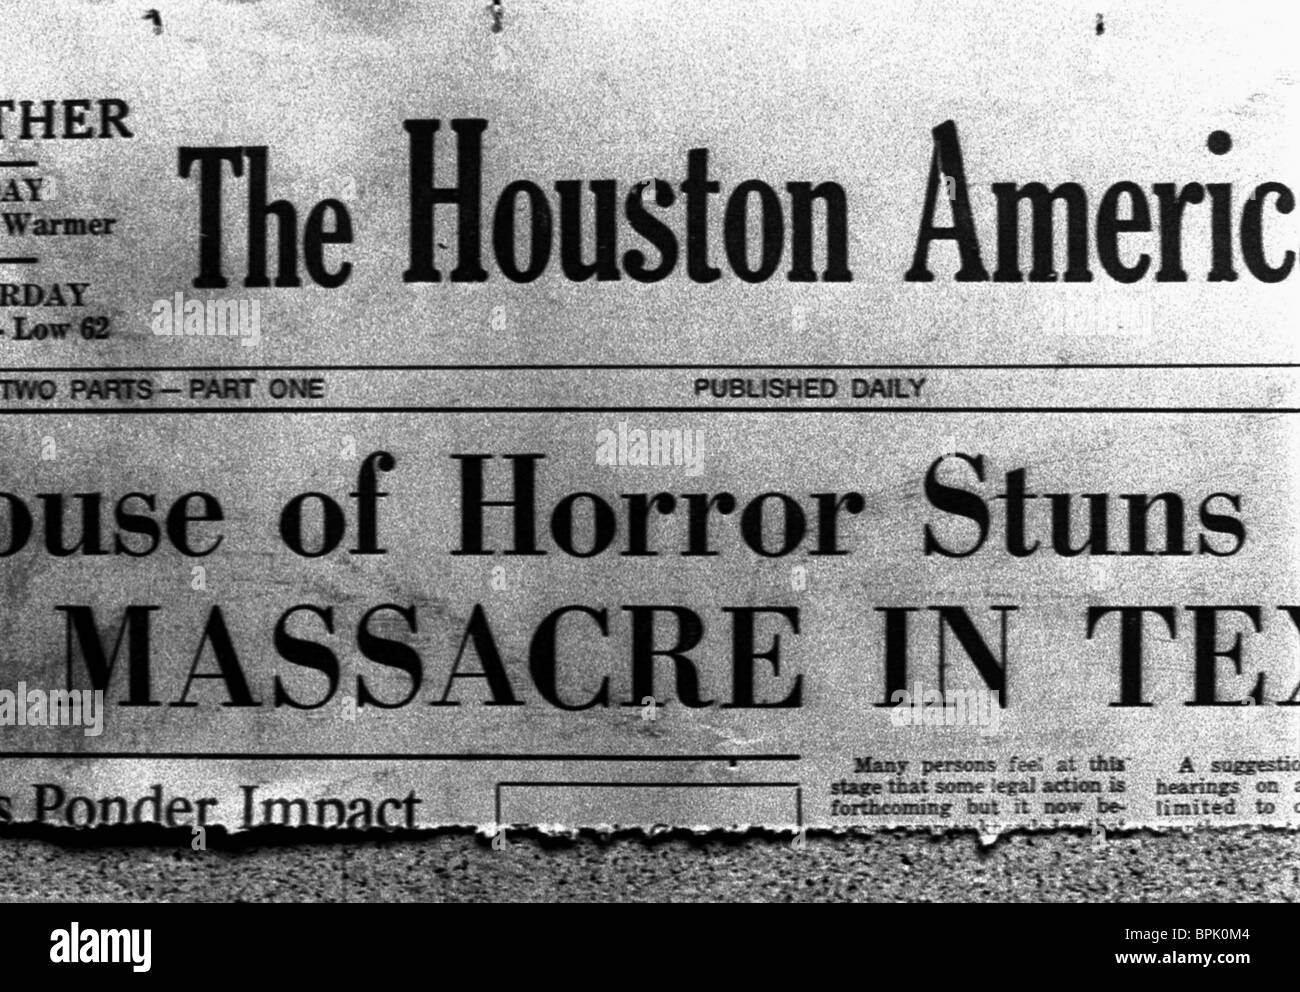 NEWSPAPER CLIPPING THE TEXAS CHAINSAW MASSACRE (2003) - Stock Image